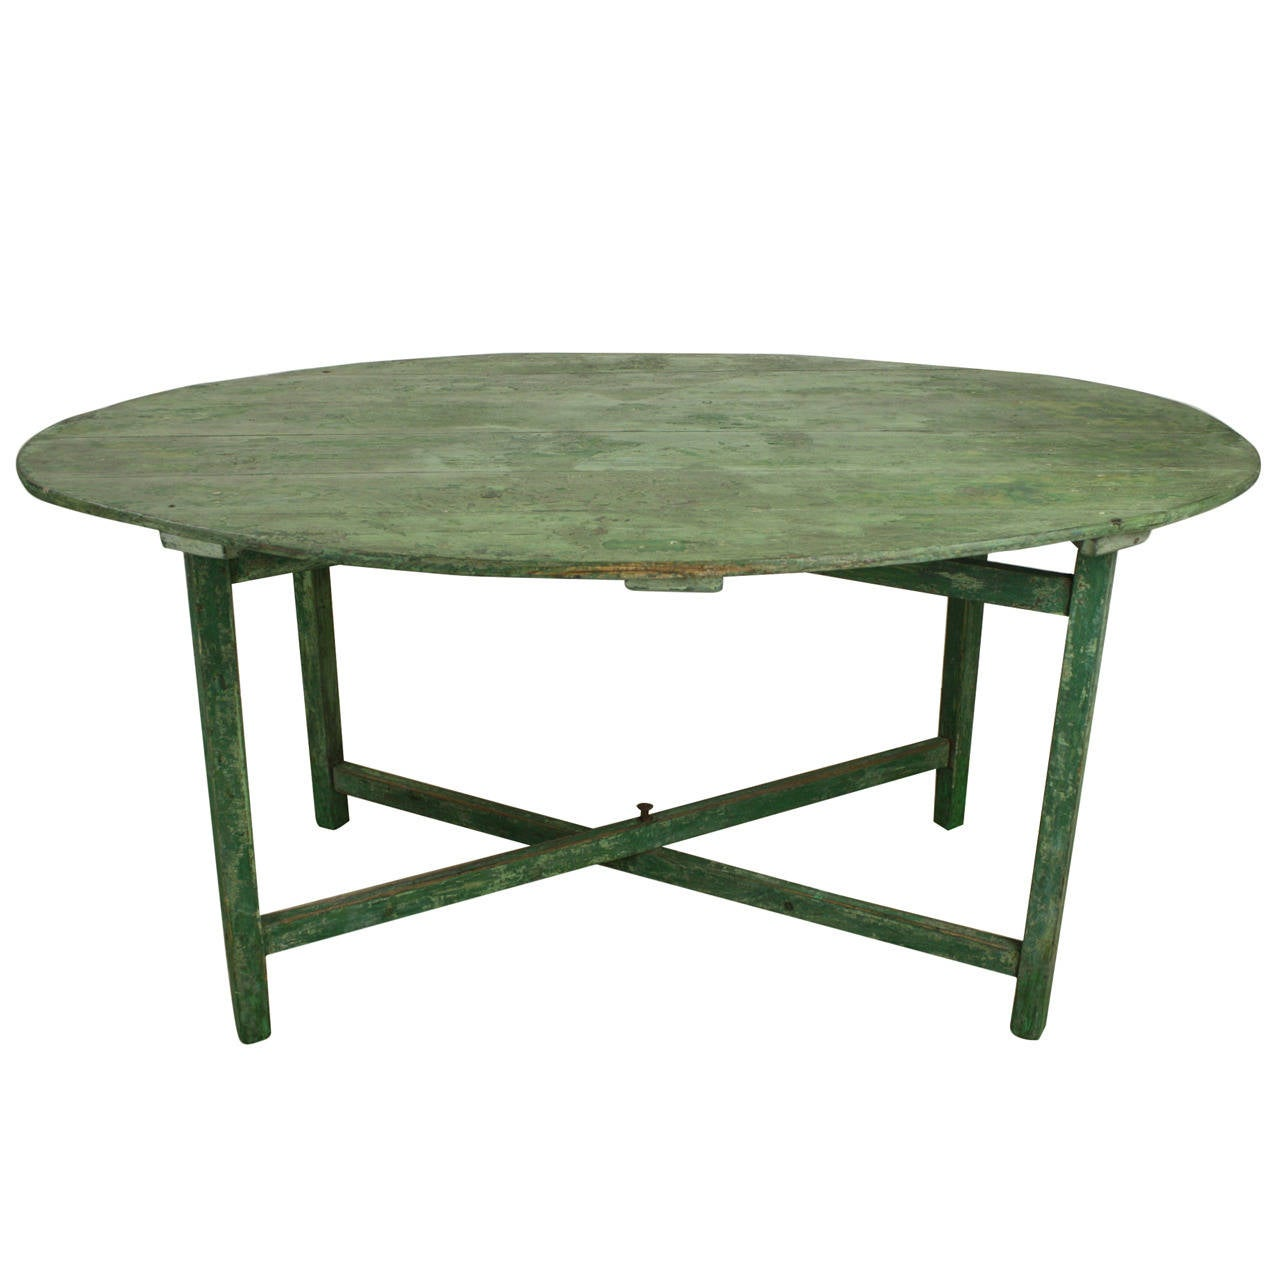 Antique french green painted oval vendange table for sale at 1stdibs - Antique french dining tables ...